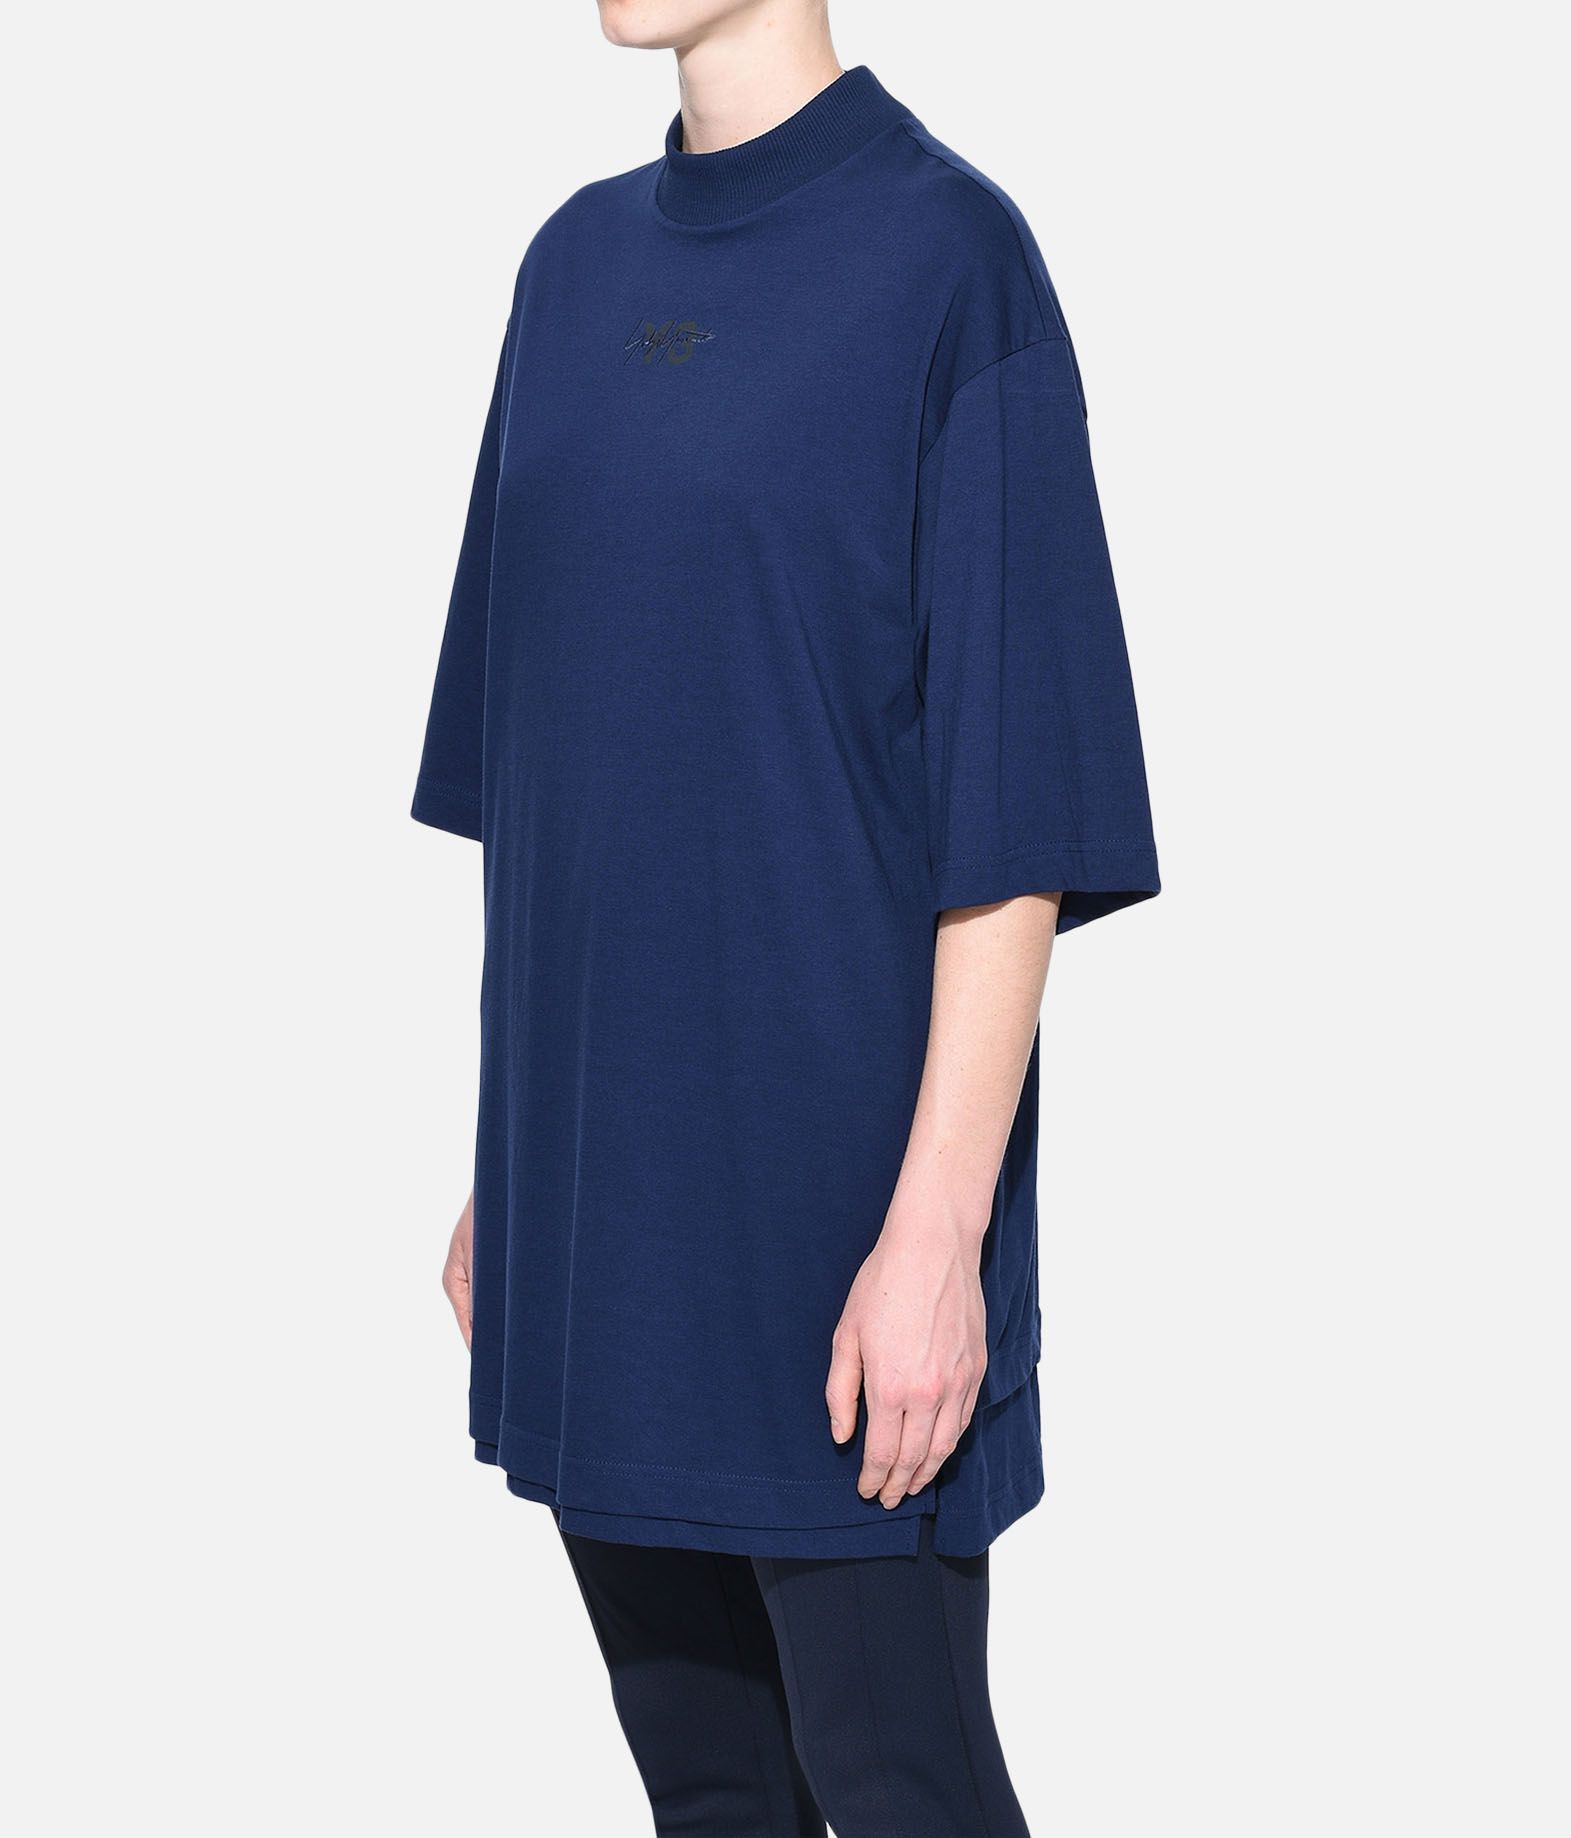 Y-3 Y-3 Signature Long Tee Short sleeve t-shirt Woman e